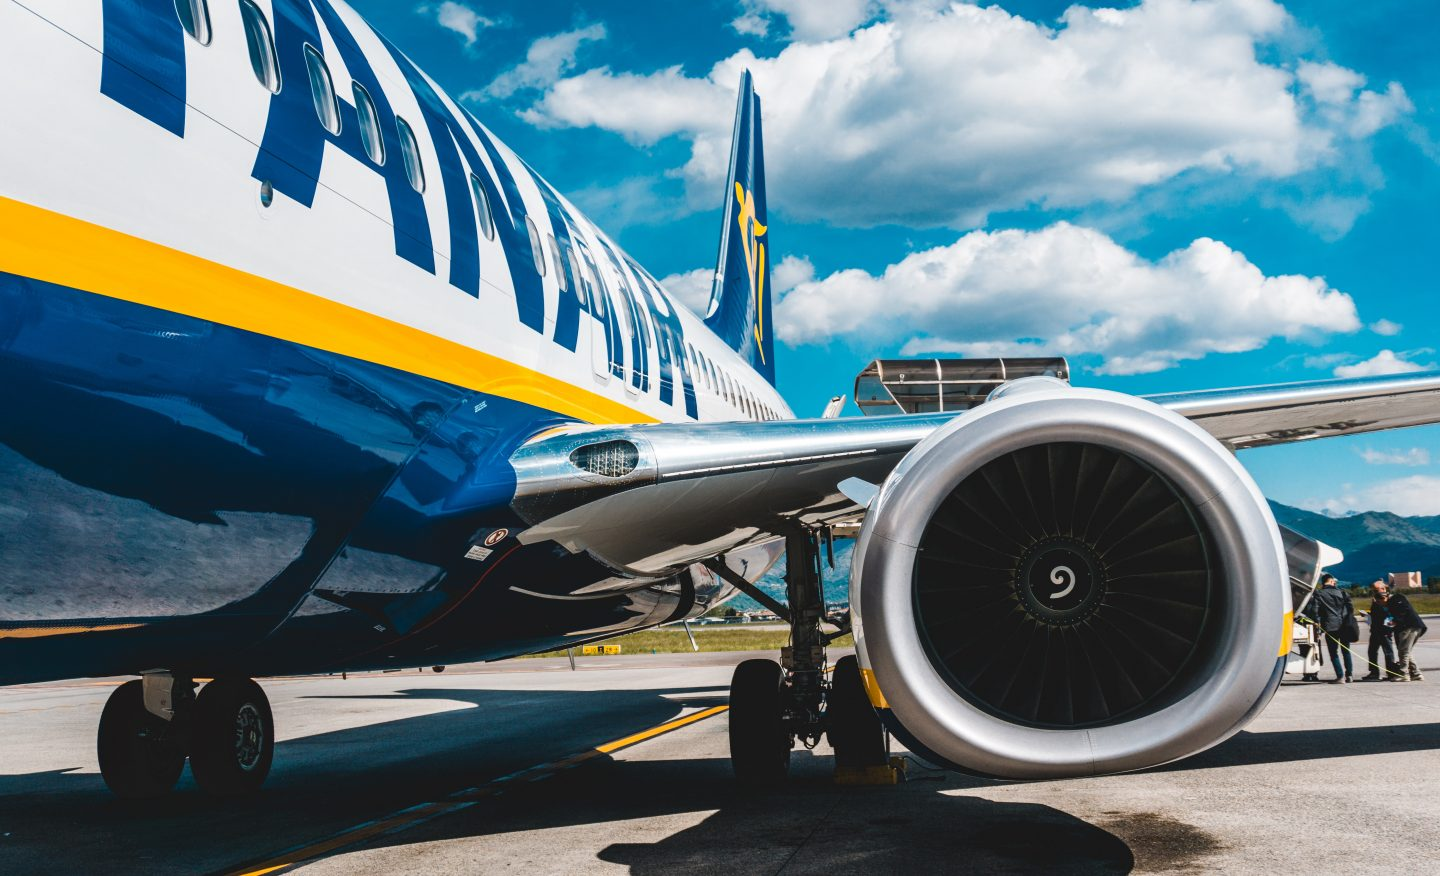 what it's like to travel abroad during the covid-19 pandemic: a Ryanair plane on tarmac